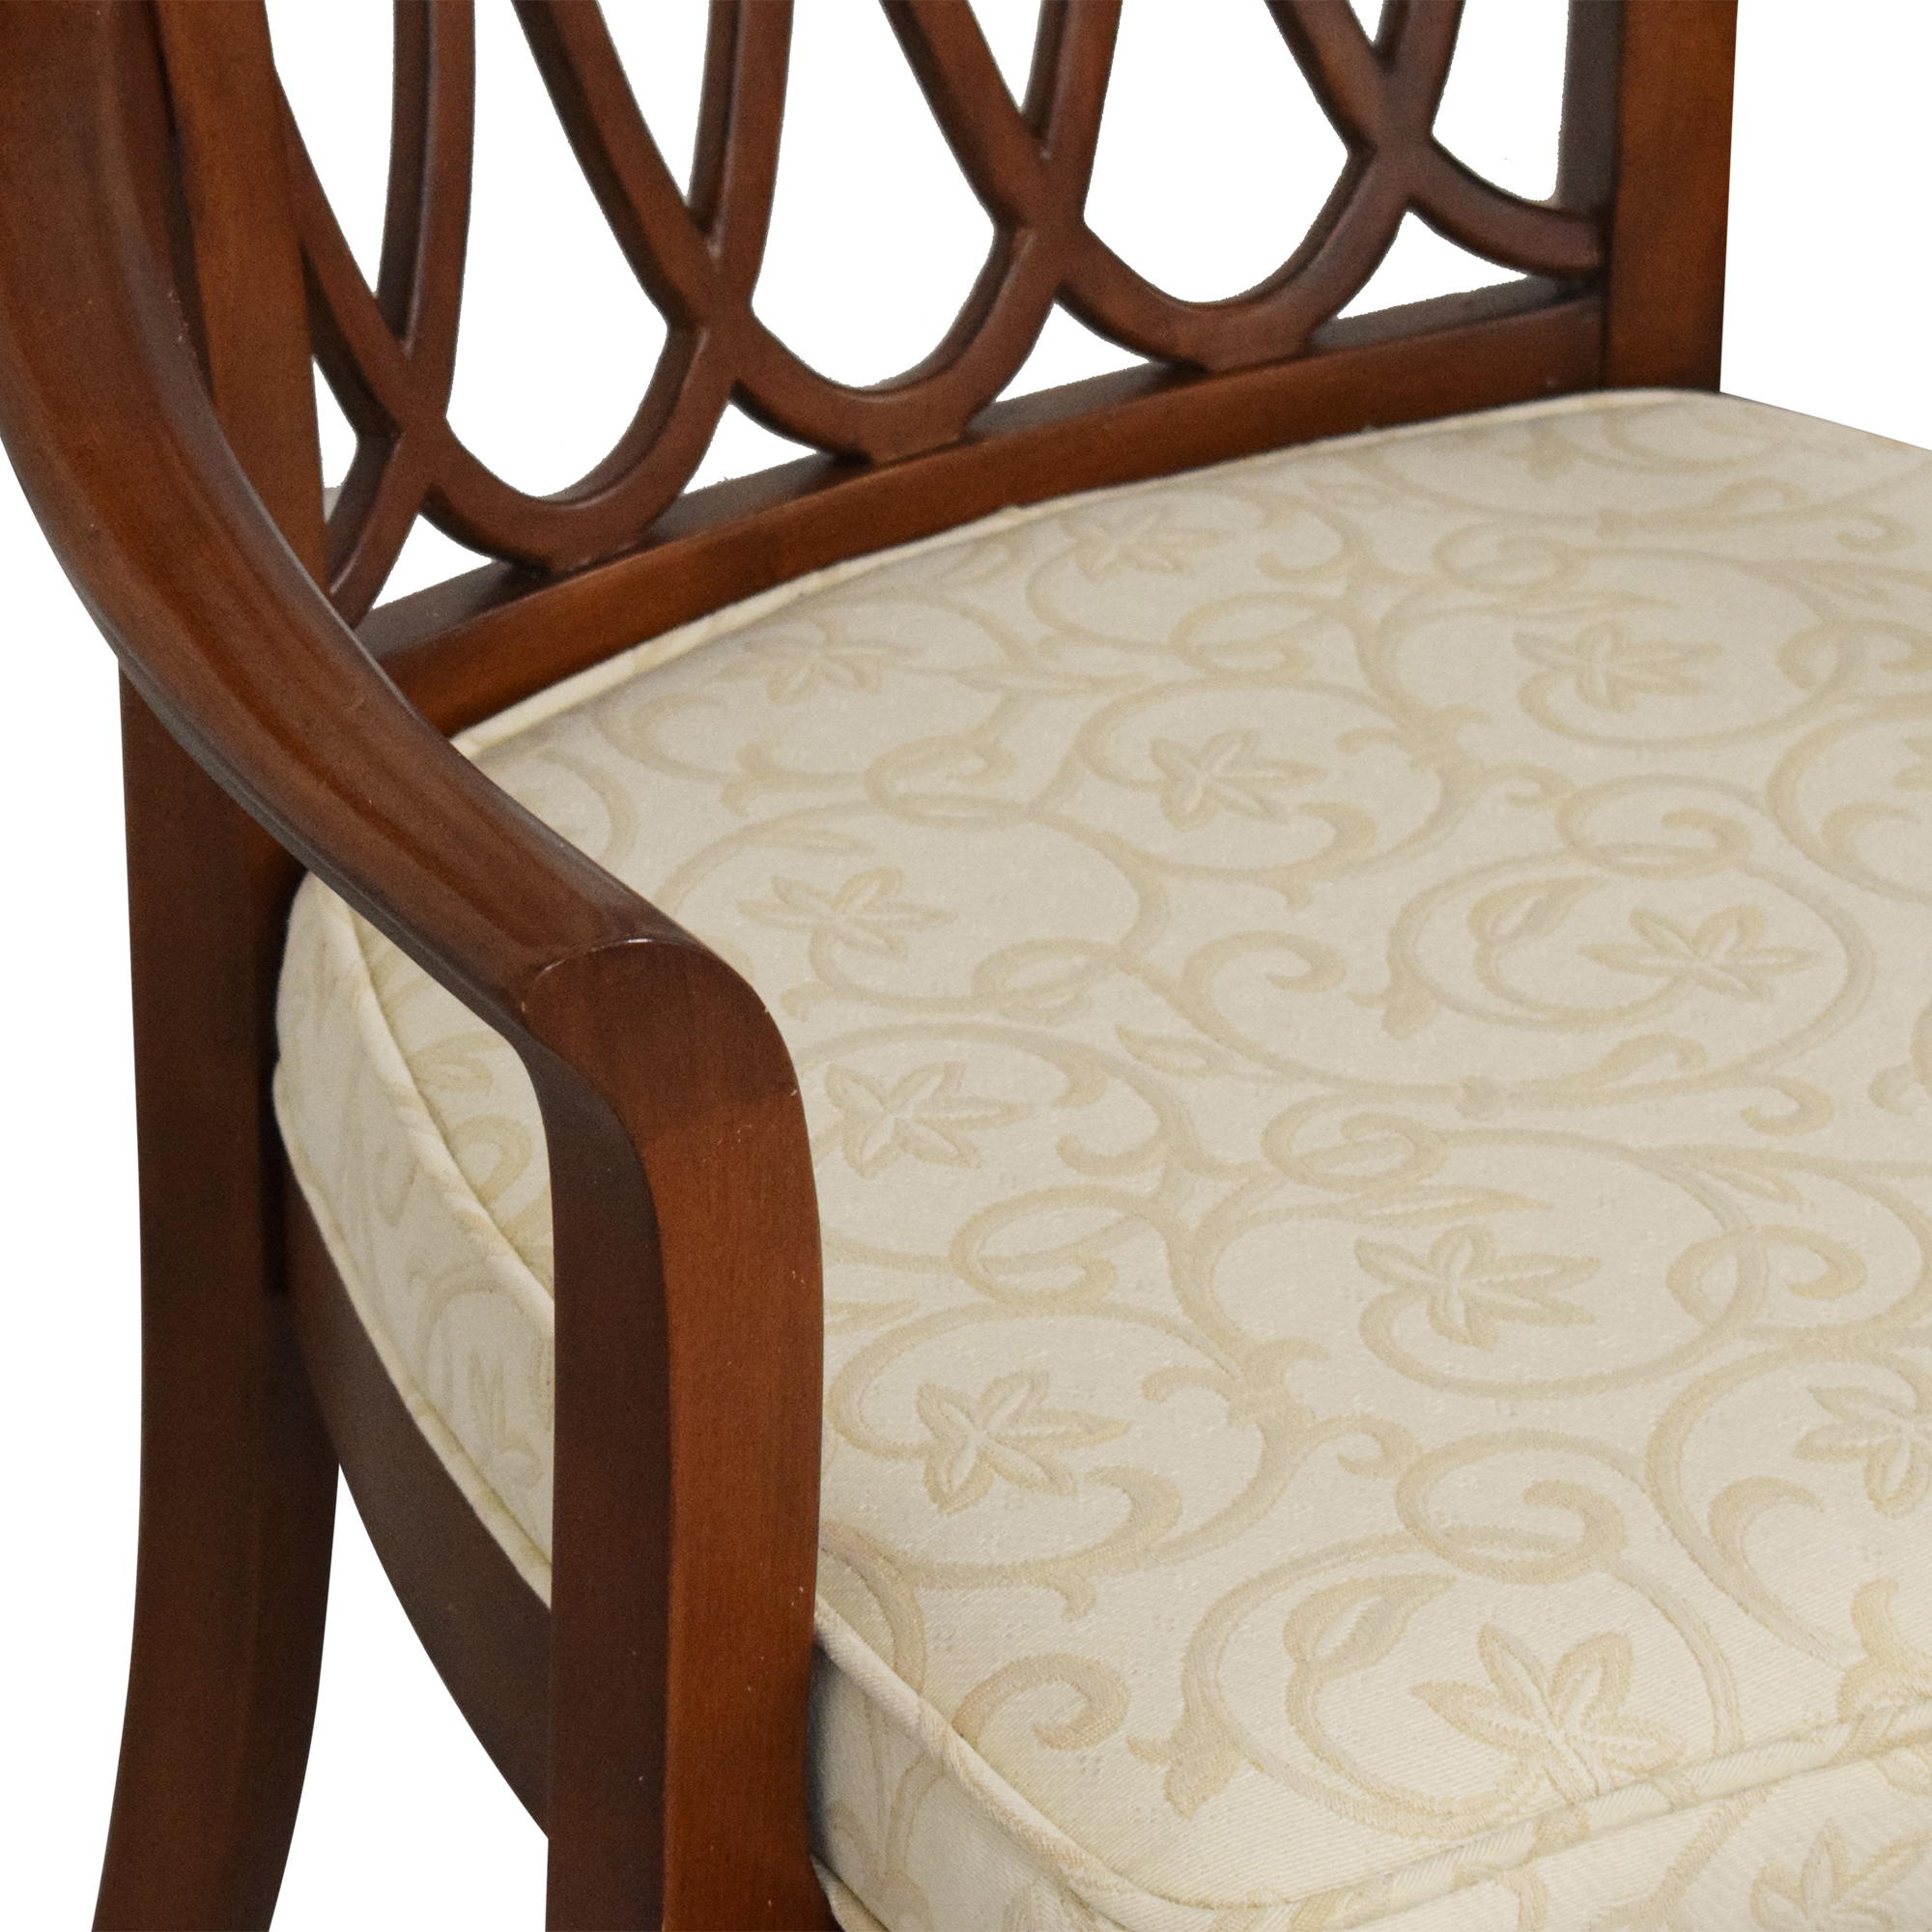 Stanley Furniture Stanley Furniture Hudson Street Dining Chairs off white and brown